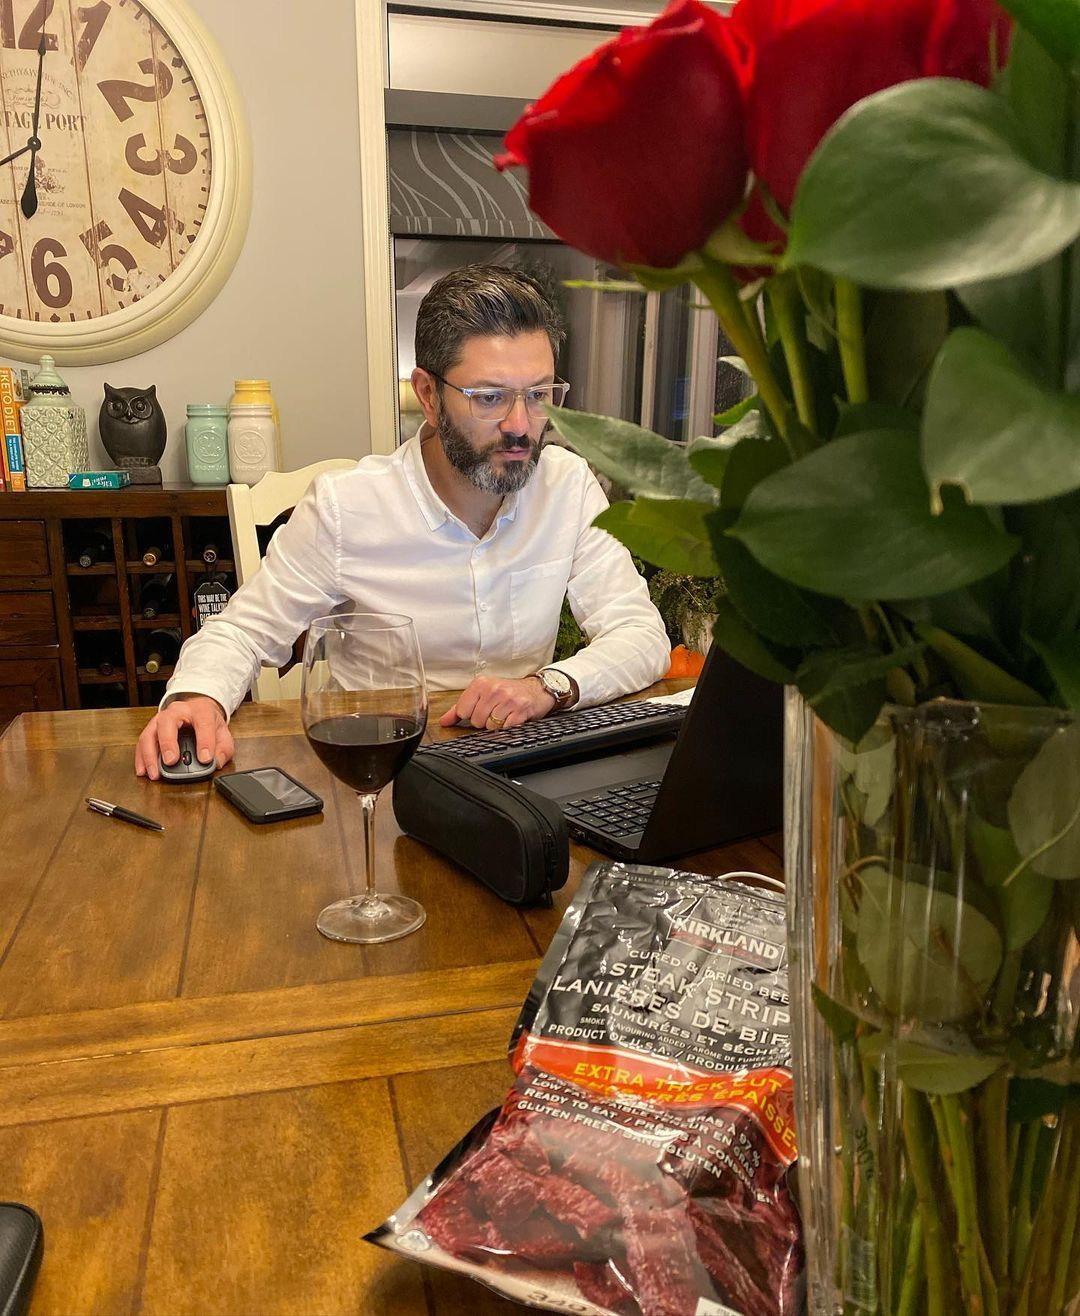 He might be working from home this evening... 𝗯𝘂𝘁 he did bring me roses and beef jerky! ⁣ ⁣ He sure knows the way to this girls heart! ❤️⁣ @fernandezlaurence ⁣ ⁣ #working #insurance #realtorlife #beefjerky #rose #flowers #heknowsthewaytomyheart #workingfromhome #realtor #oakbank #manitoba